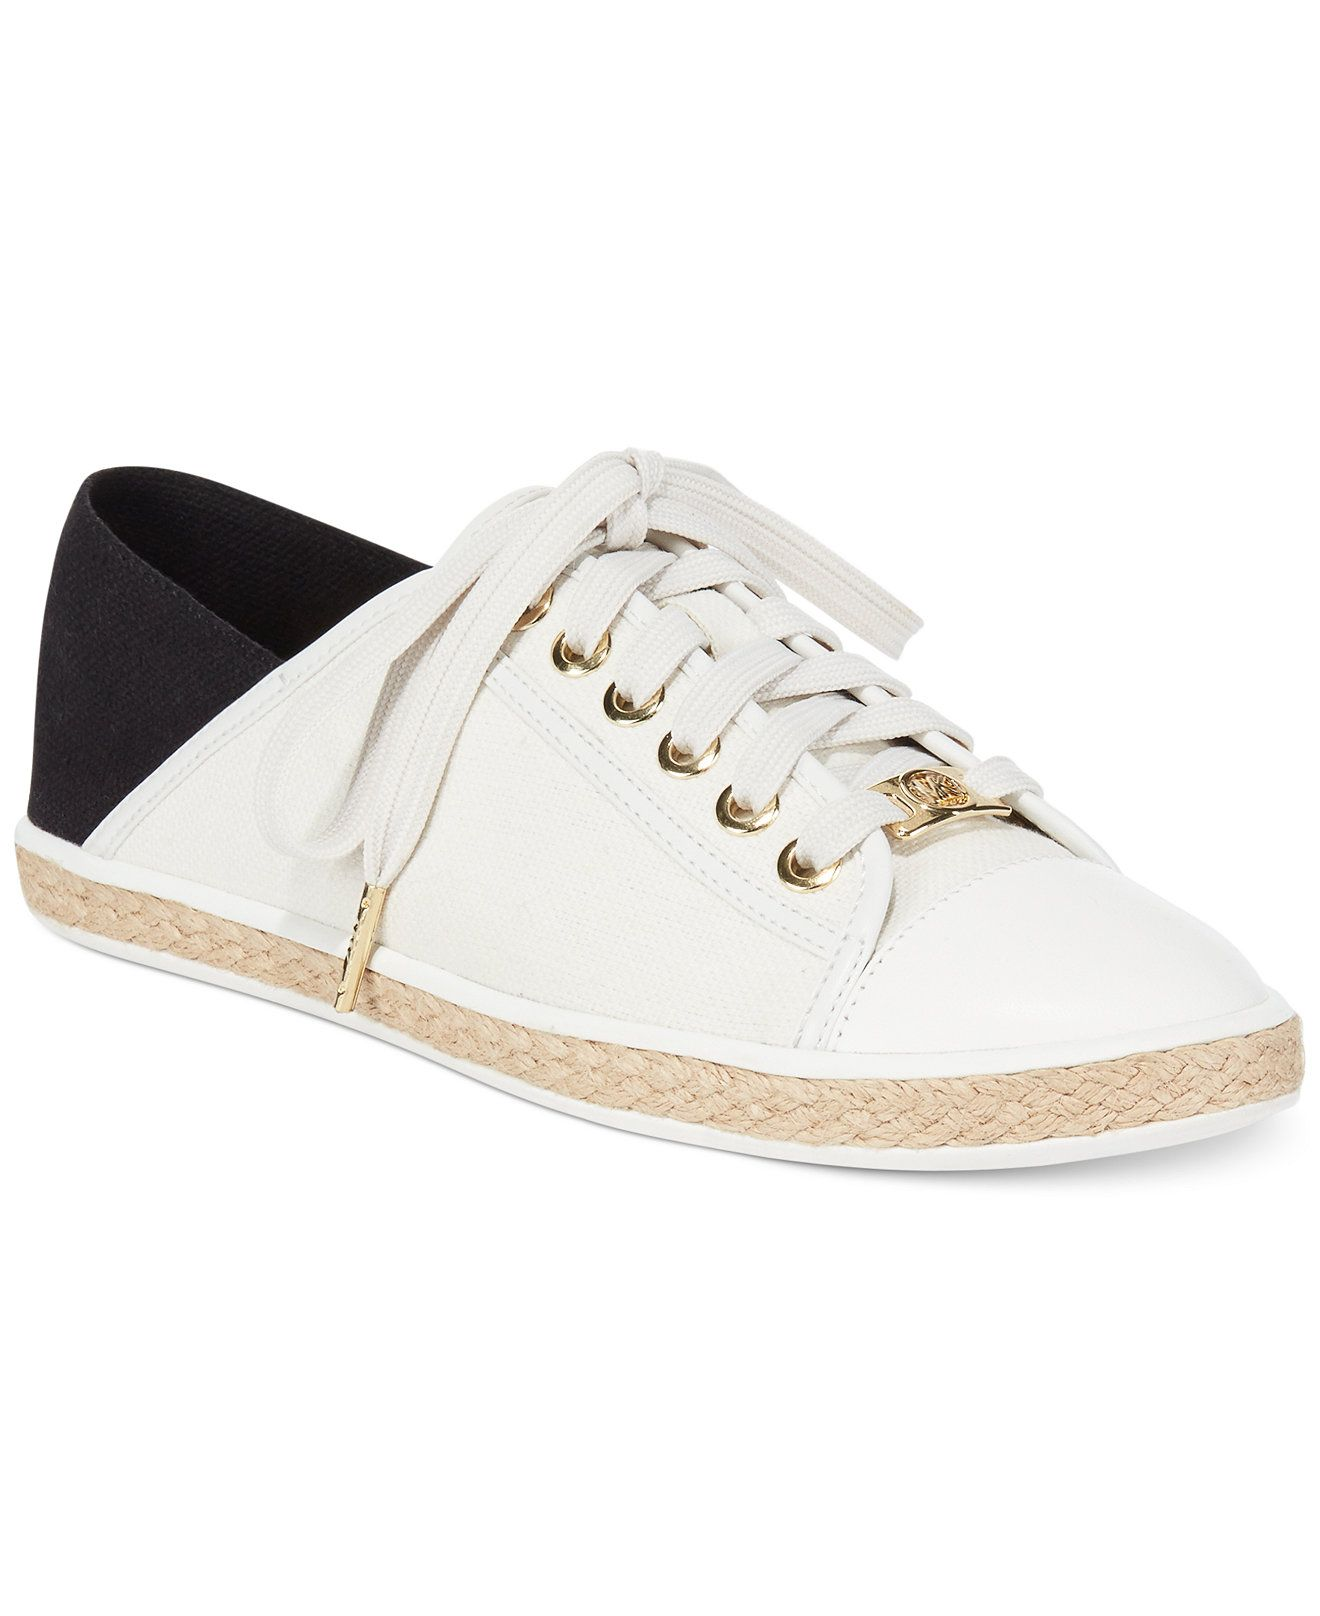 9a895ab83c8b9b MICHAEL Michael Kors Kristy Slide Sneakers - Shoes - Macy s ...